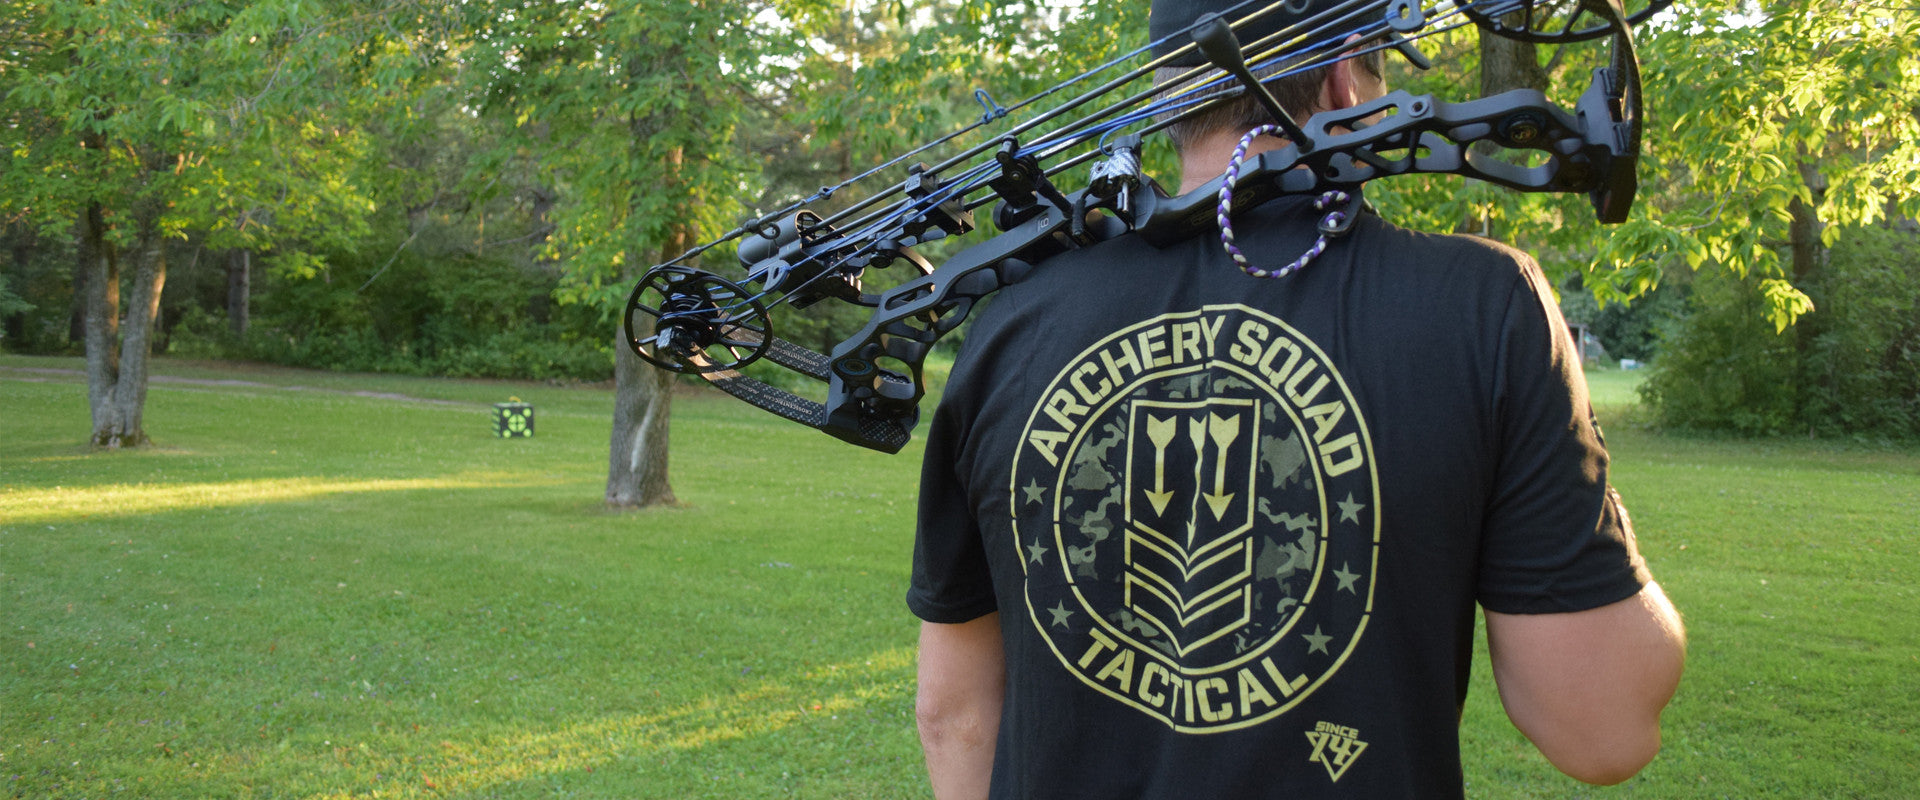 Squad Tactical Archery Shirt